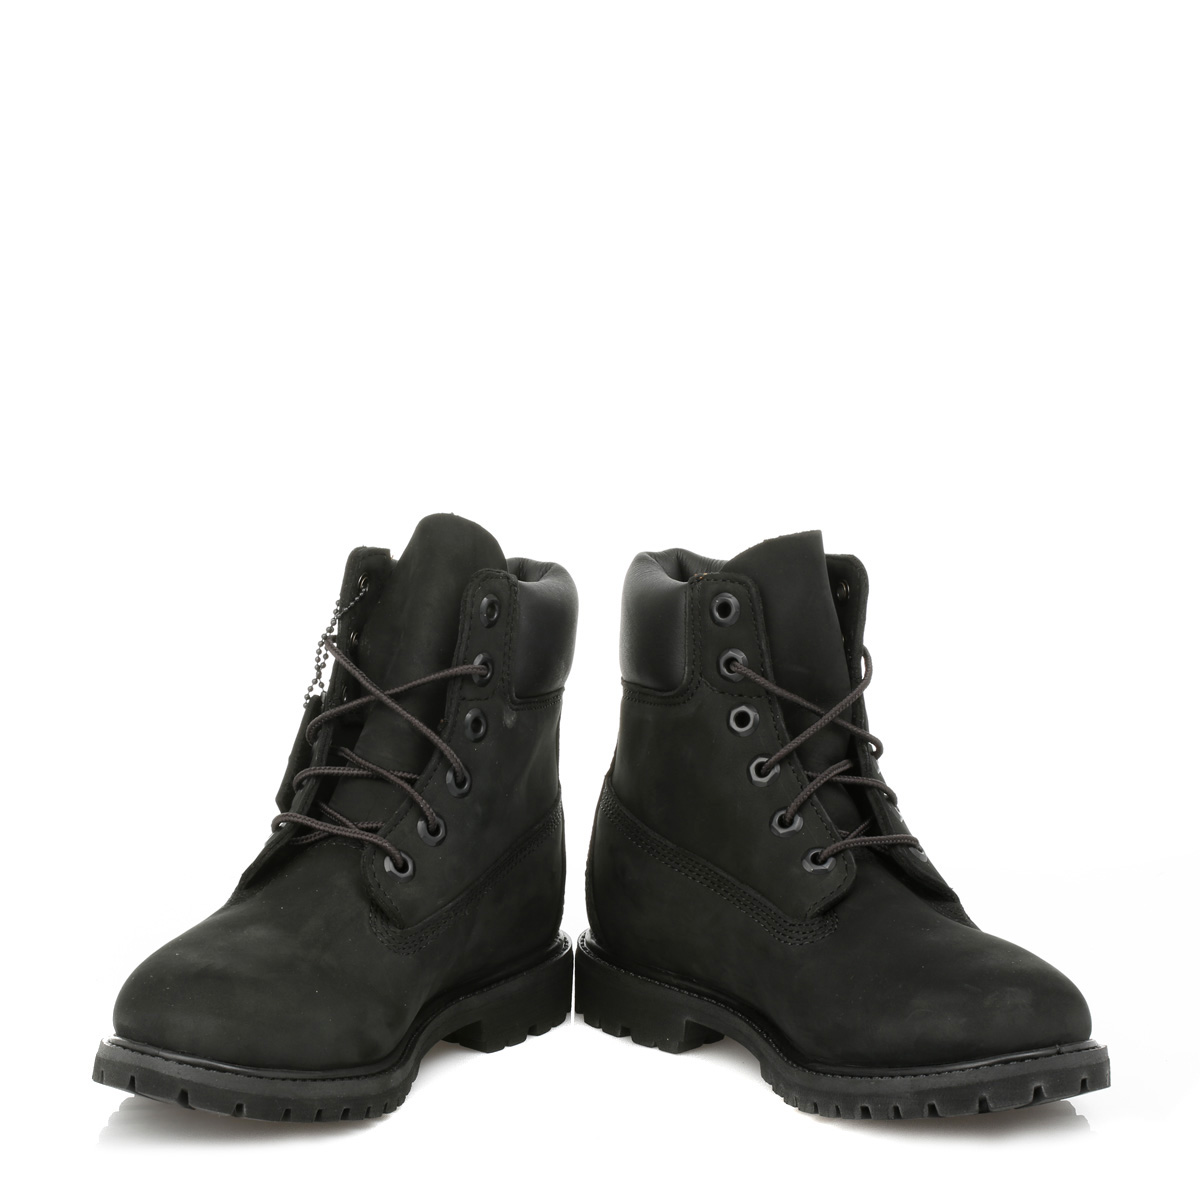 Timberland Women Ankle Boots Black 6